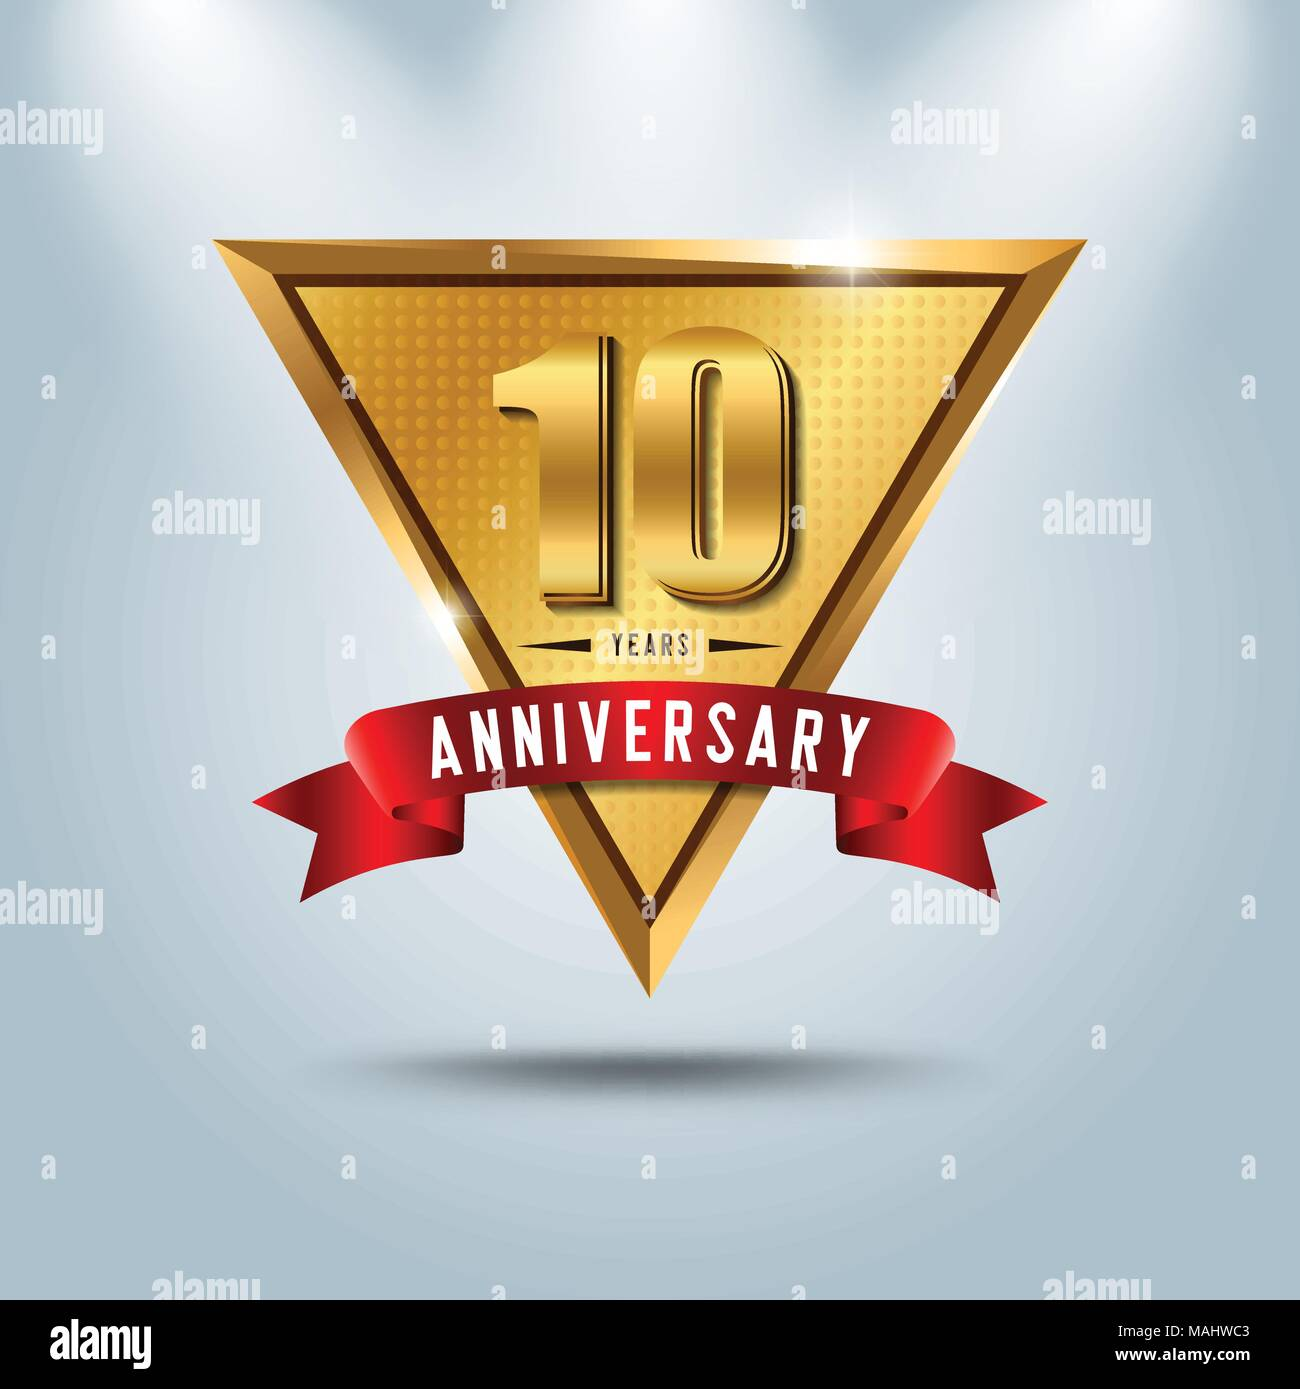 Ten symbol years anniversary logo stock photos ten symbol years 10 years anniversary celebration logotype golden anniversary emblem with red ribbon design for booklet biocorpaavc Images